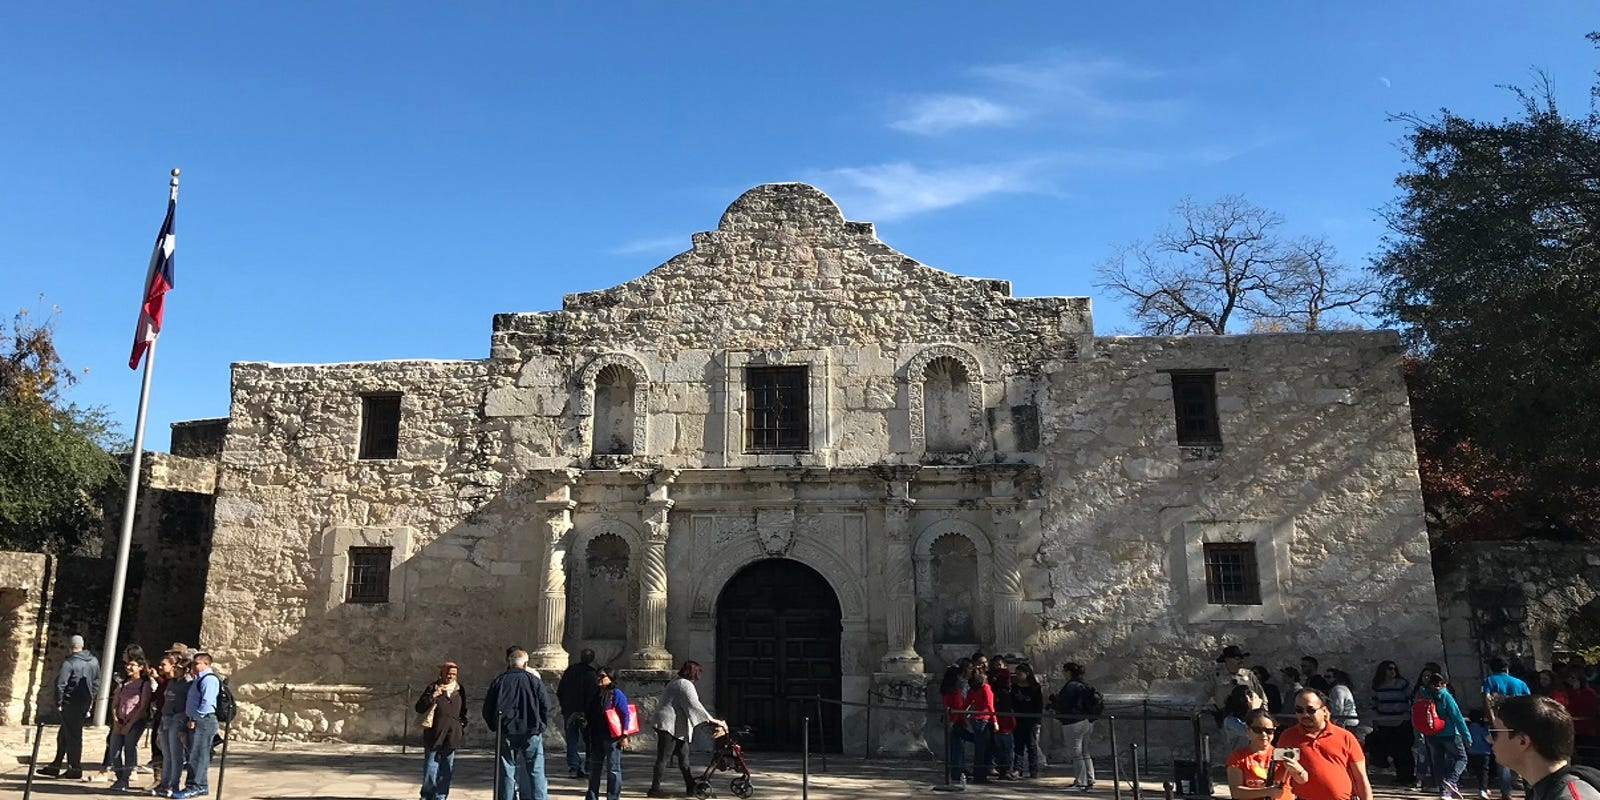 Human remains discovered at the Alamo during archaeological exploration